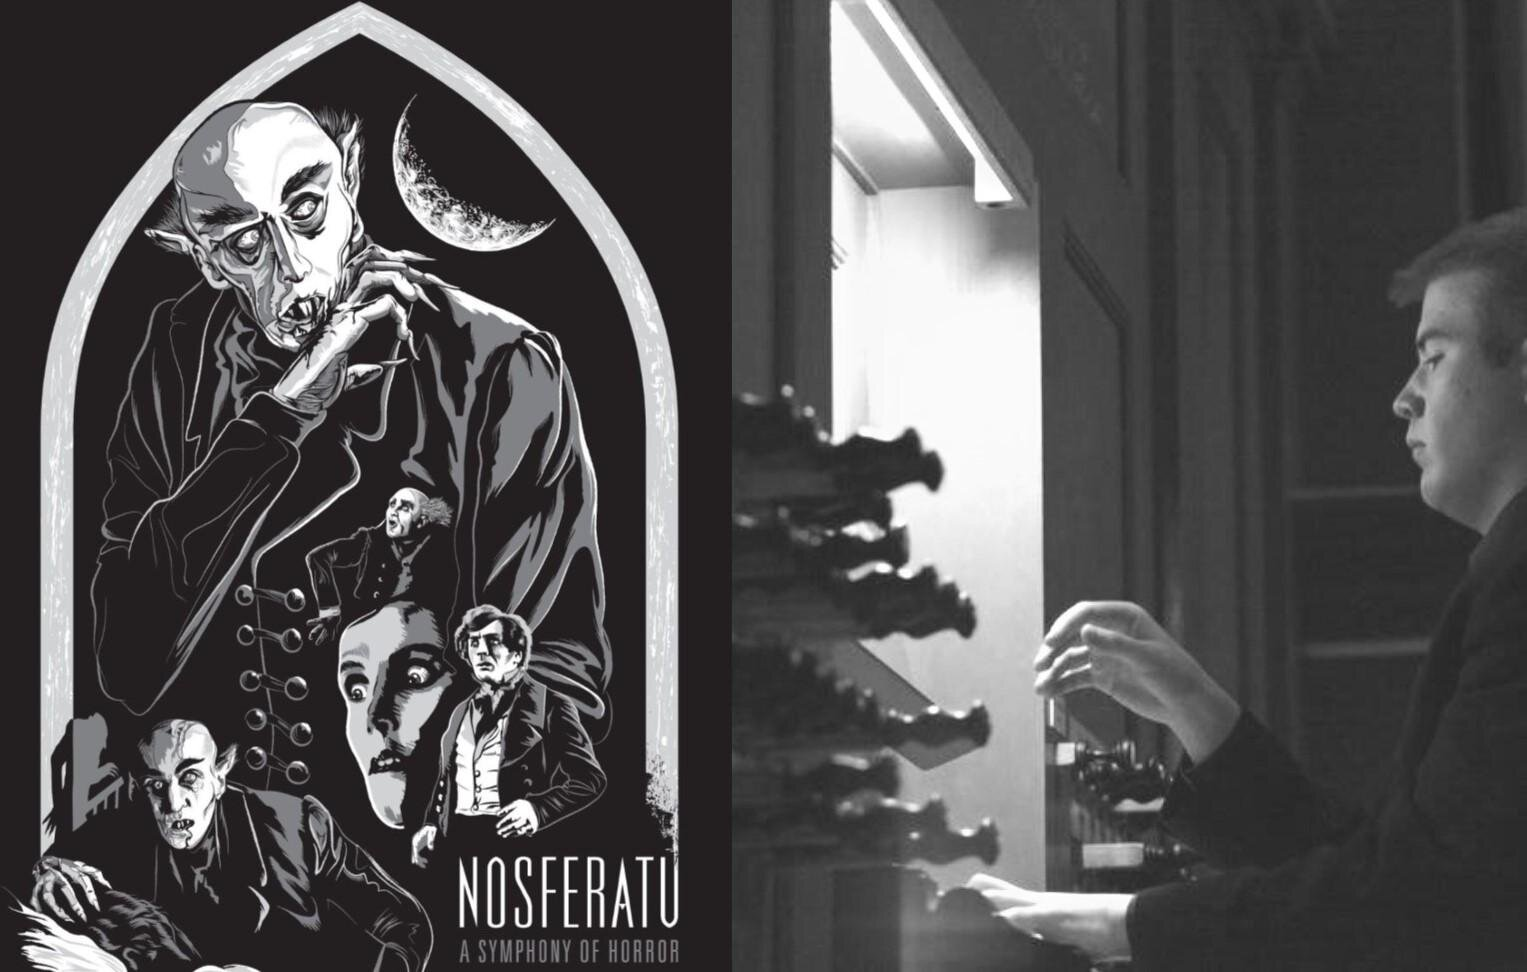 - New York theater organist Parker Ramsay accompanies the 1922 silent German Expressionaist horror film 'Nosferatu'.Tickets $10 - $20, but free to seniors as a West View News concert.For information and booking click here.